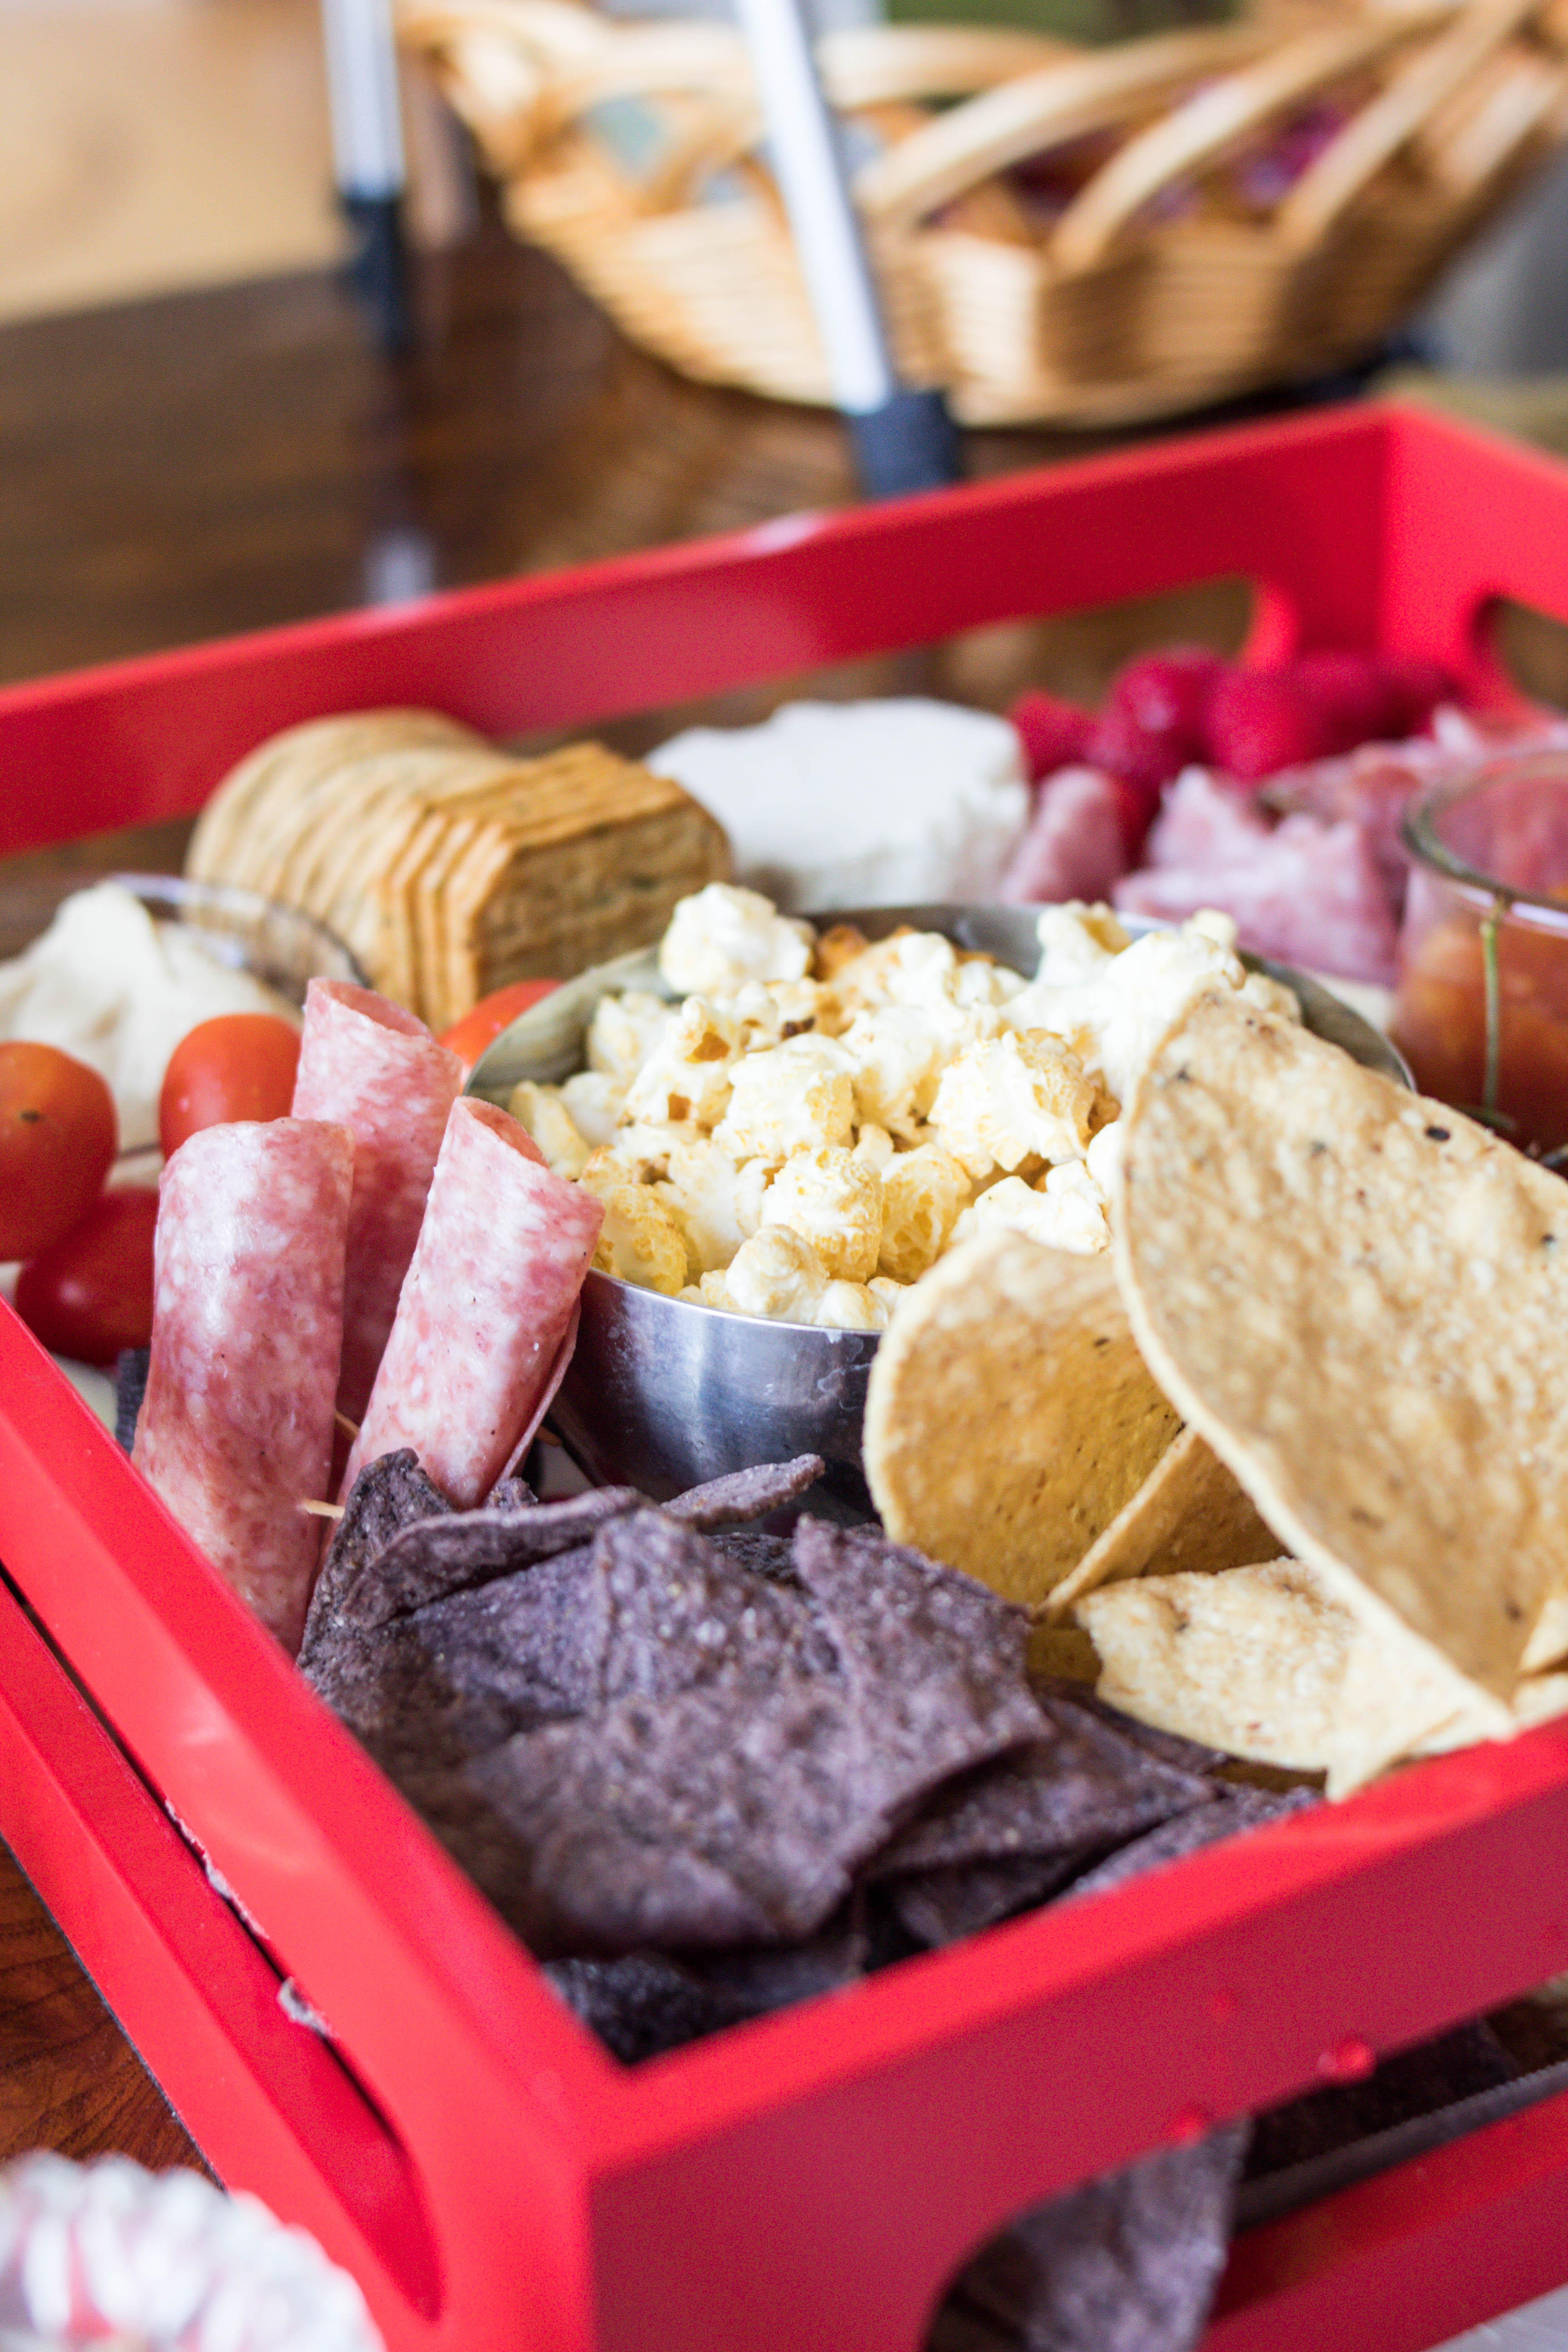 Grazing boards are all the rage right now! Lifestyle blogger, What Nicole Wore, takes you through how to assemble the best charcuterie board. // cheese board, party snacks DIY, appetizer ideas, 4th of july charcuterie board, trader joes snacks